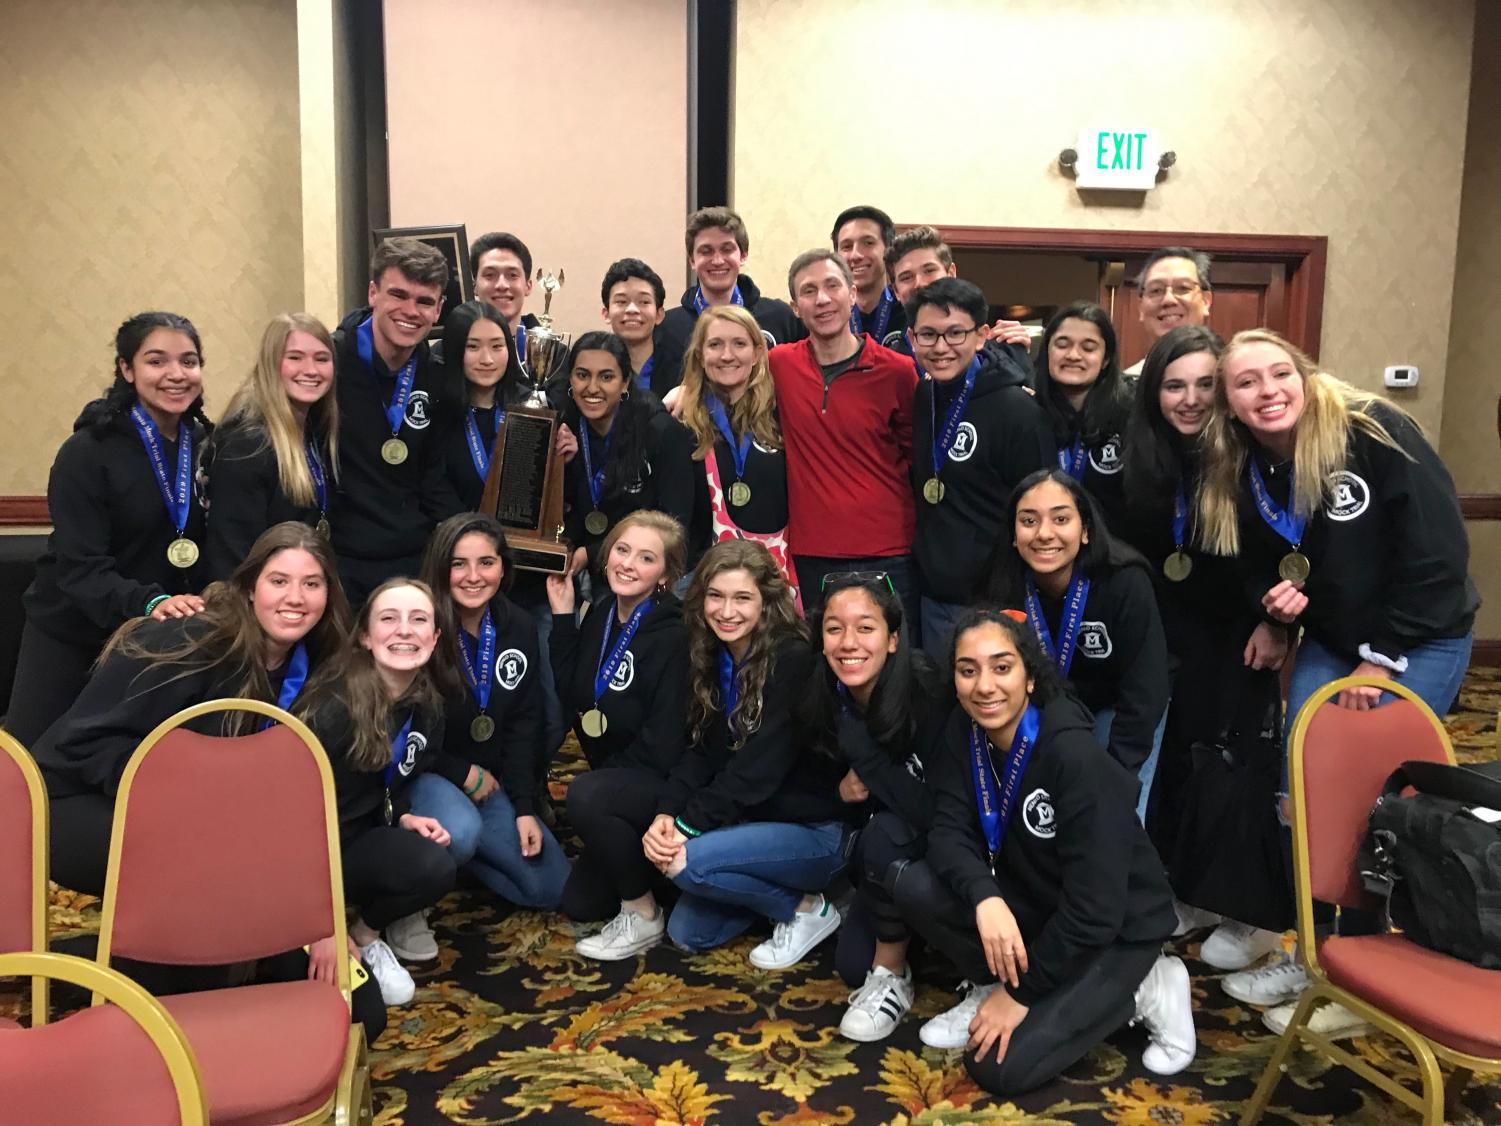 Menlo Mock Trial poses for a photo after state championship win. Photo courtesy of Dicky Yan.